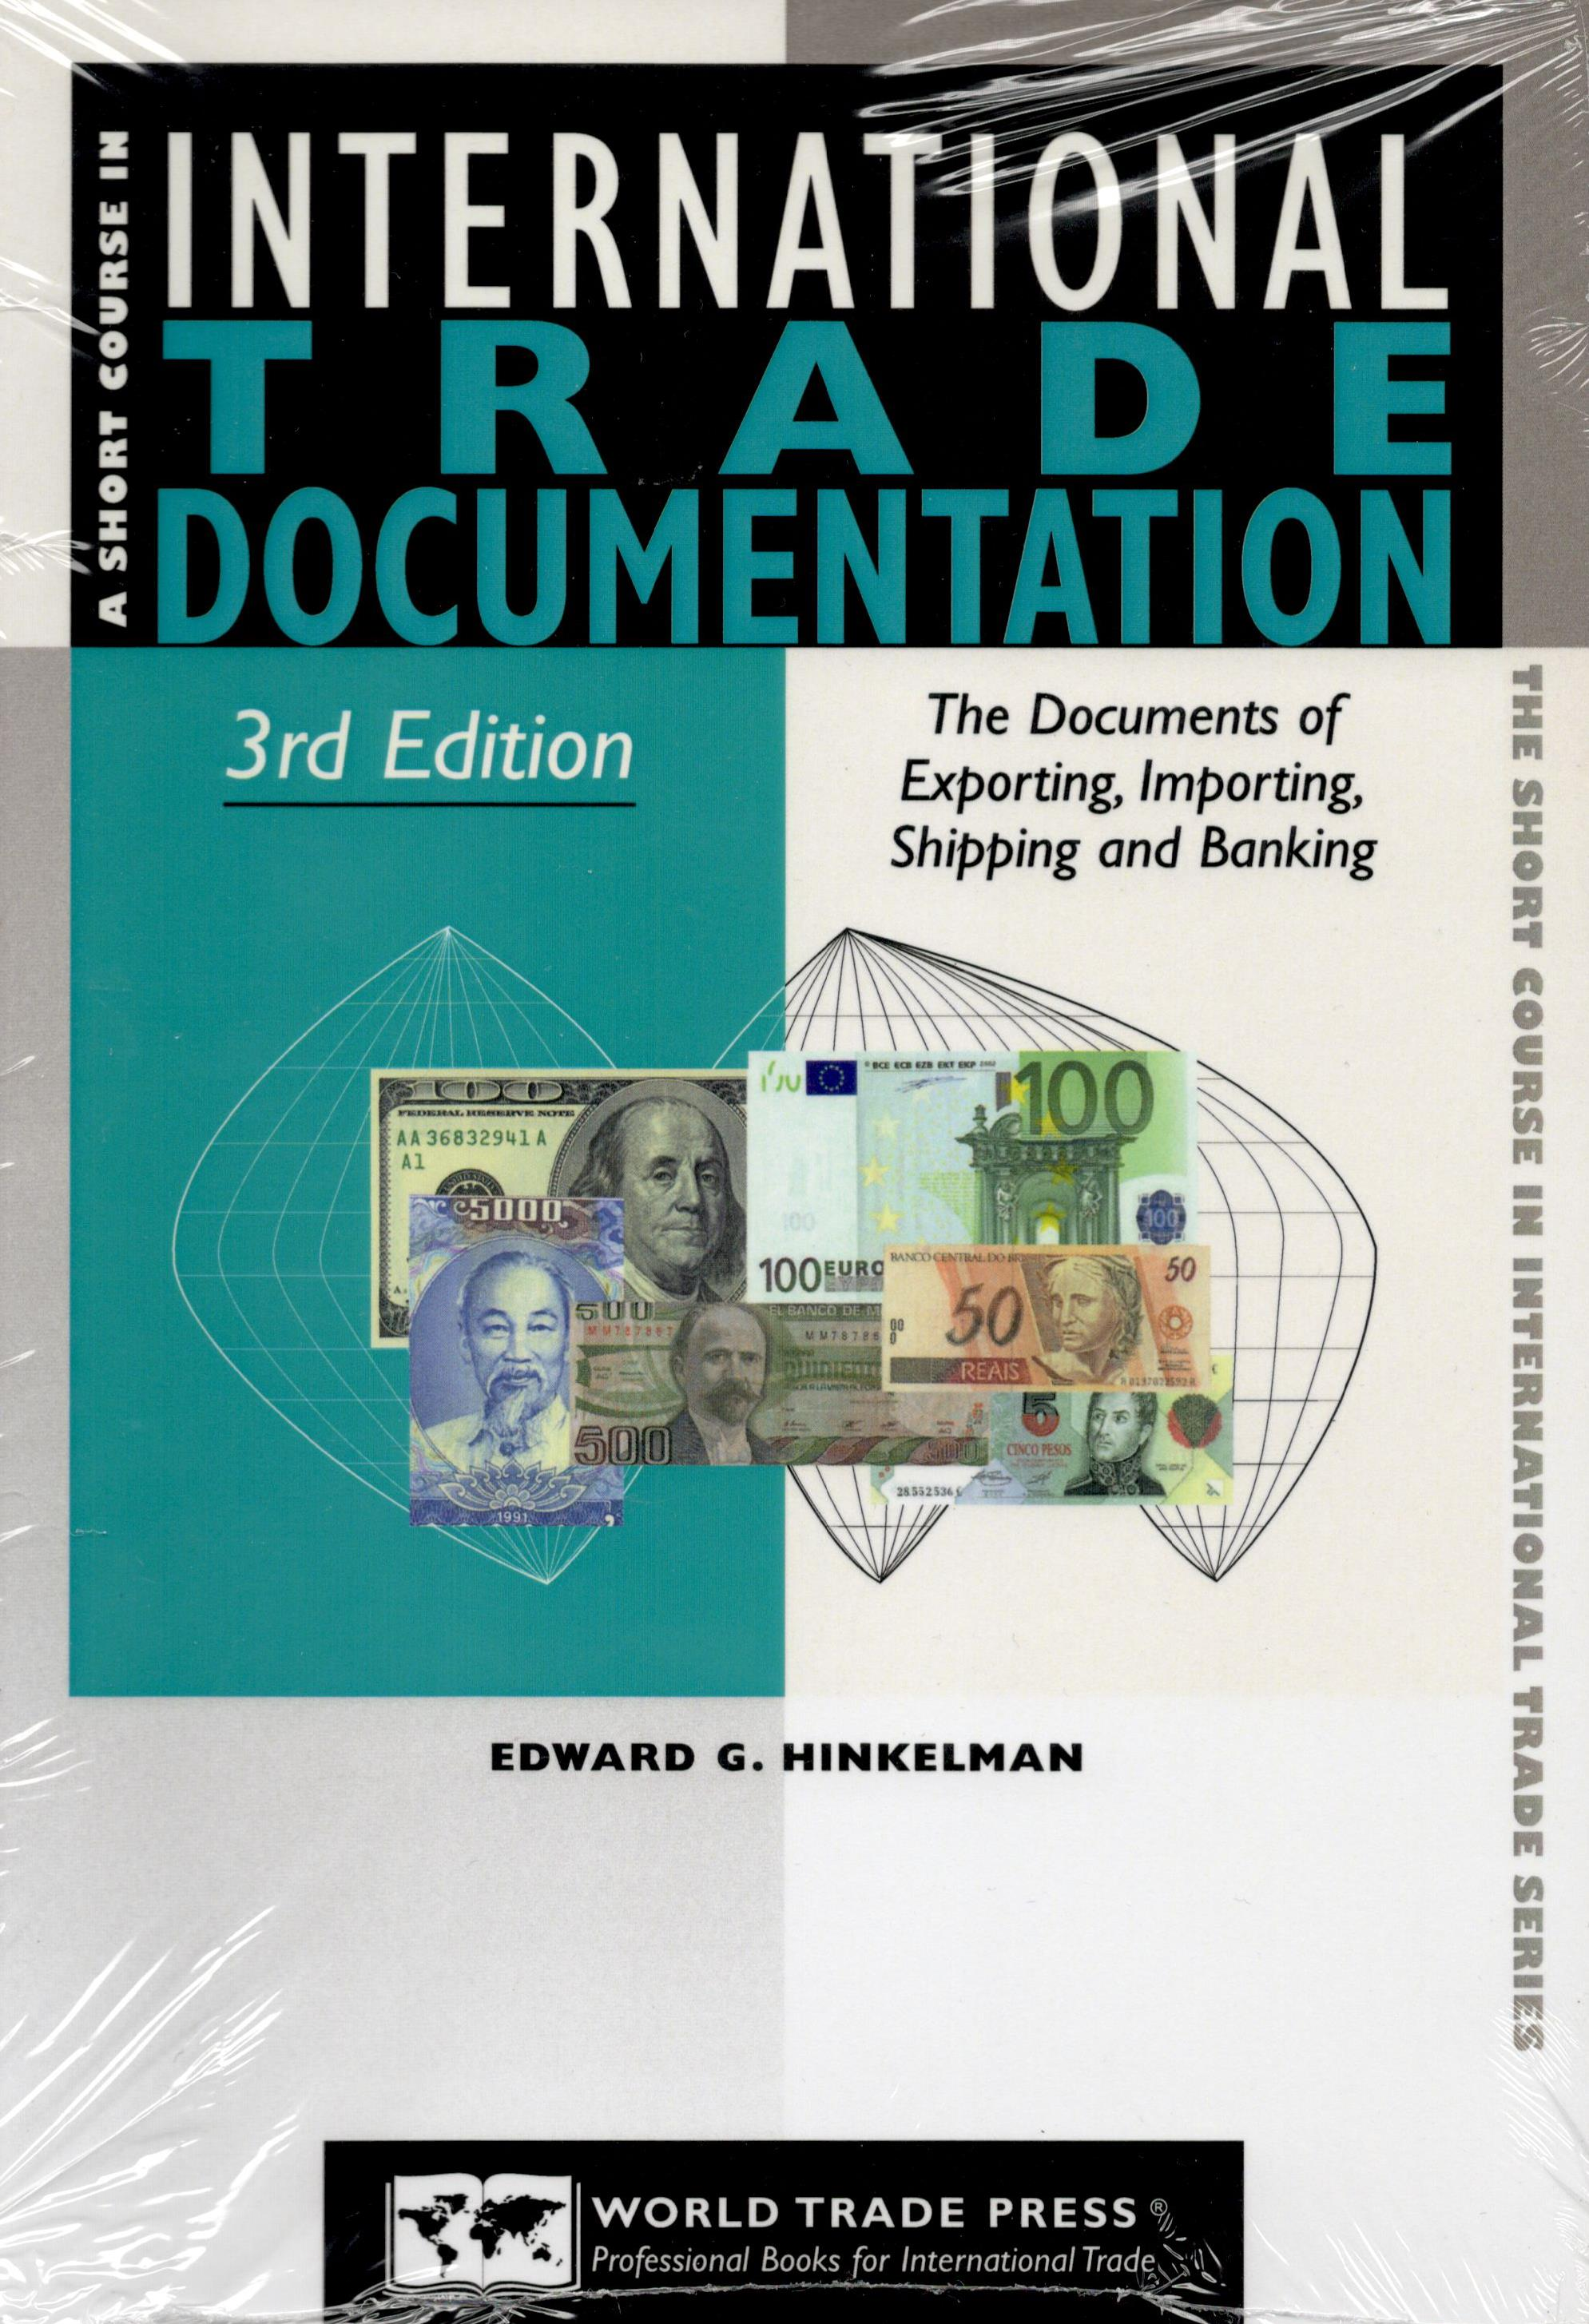 International Trade Documentation, 3rd edition